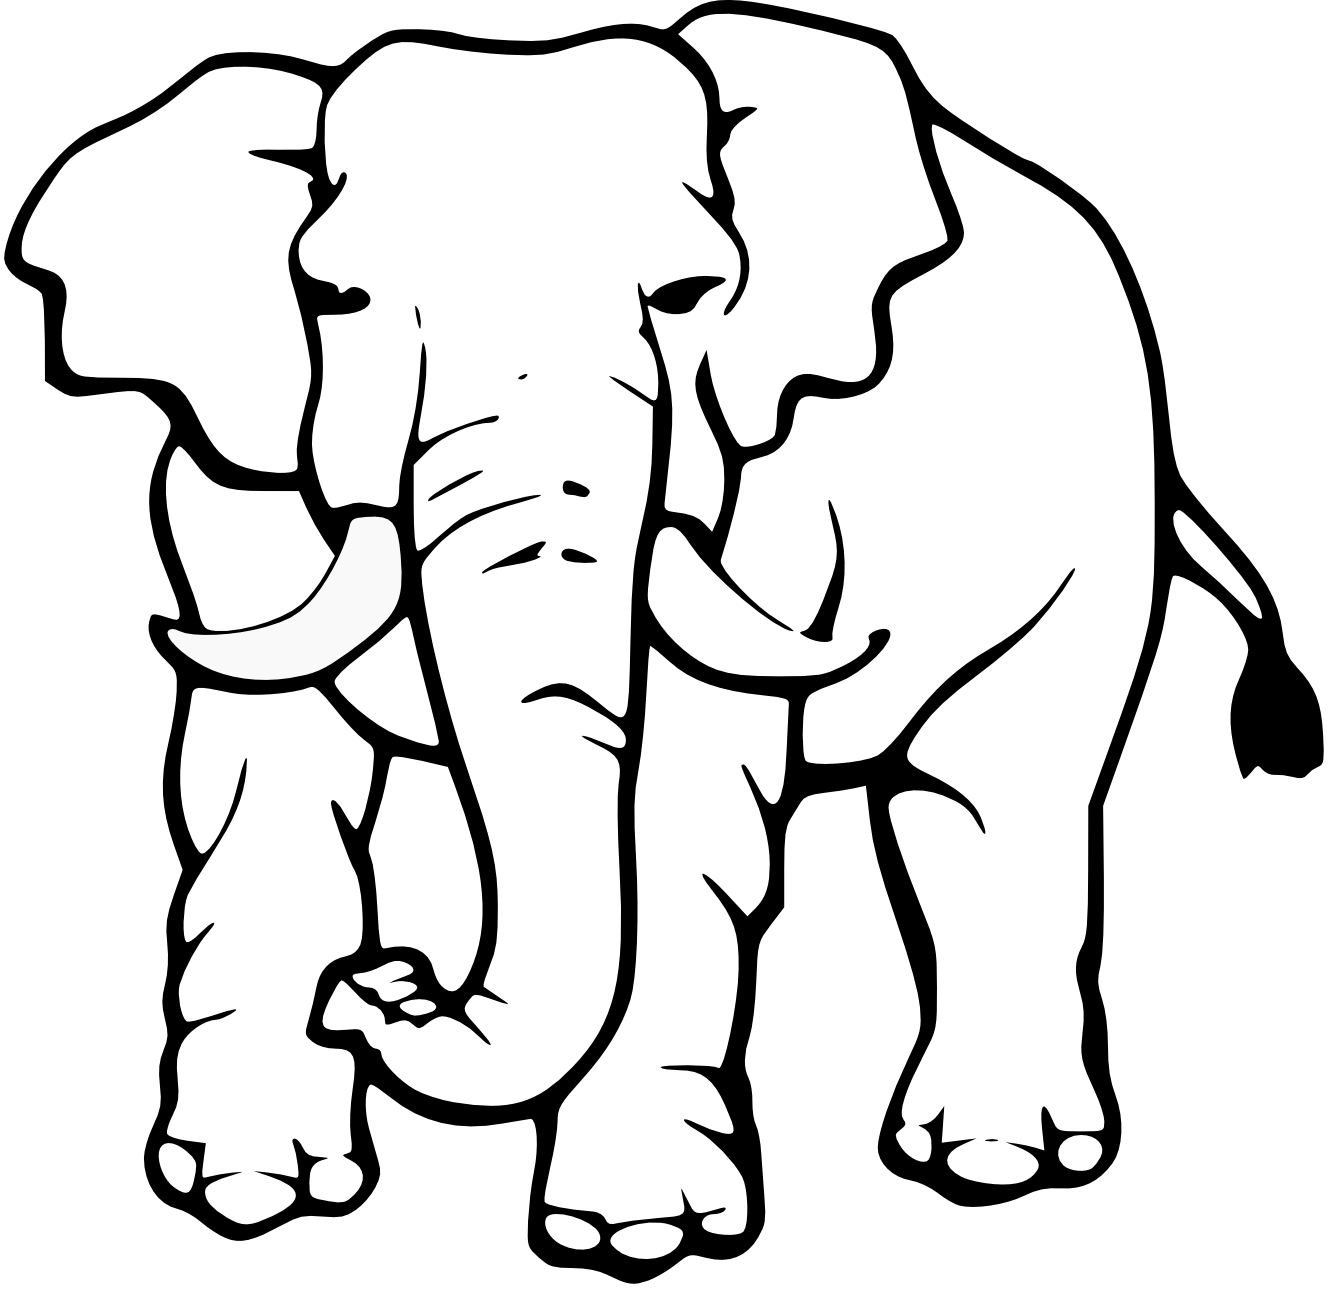 Missions clipart black and white. Elephant silhouette trunk up